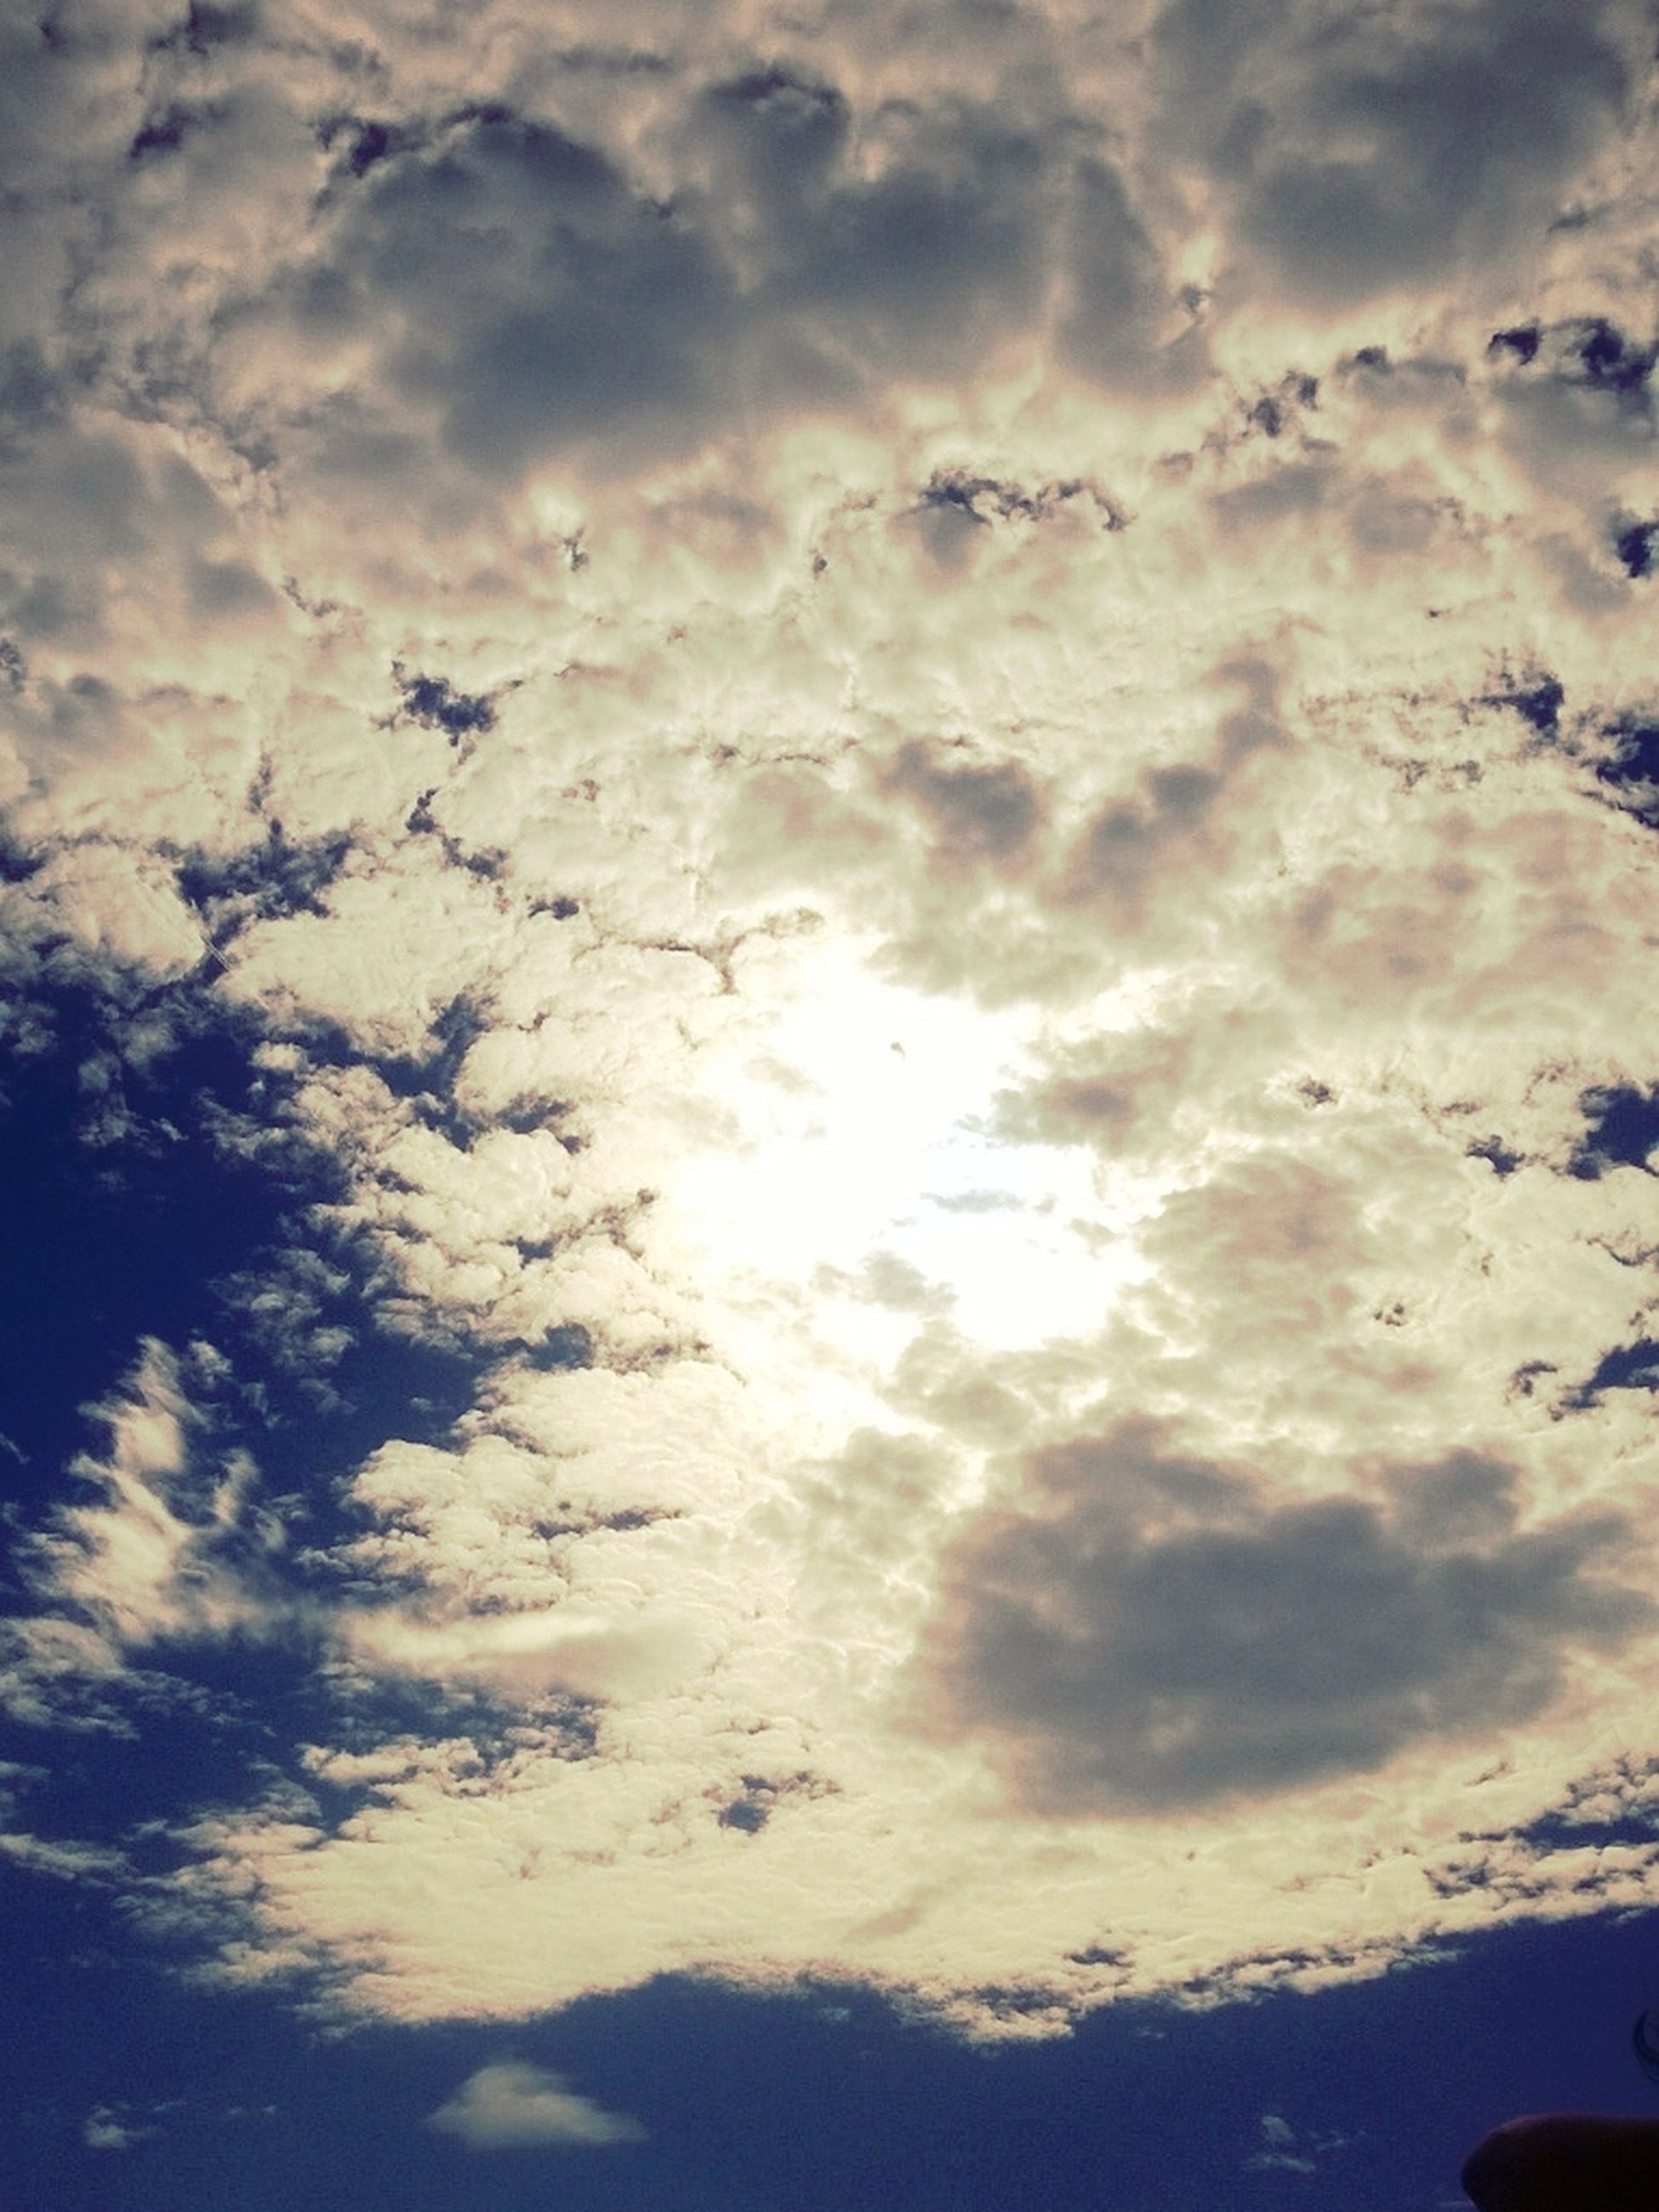 sky, cloud - sky, cloudy, beauty in nature, tranquility, scenics, tranquil scene, low angle view, weather, nature, cloudscape, silhouette, cloud, sunset, idyllic, dramatic sky, overcast, outdoors, no people, sunlight